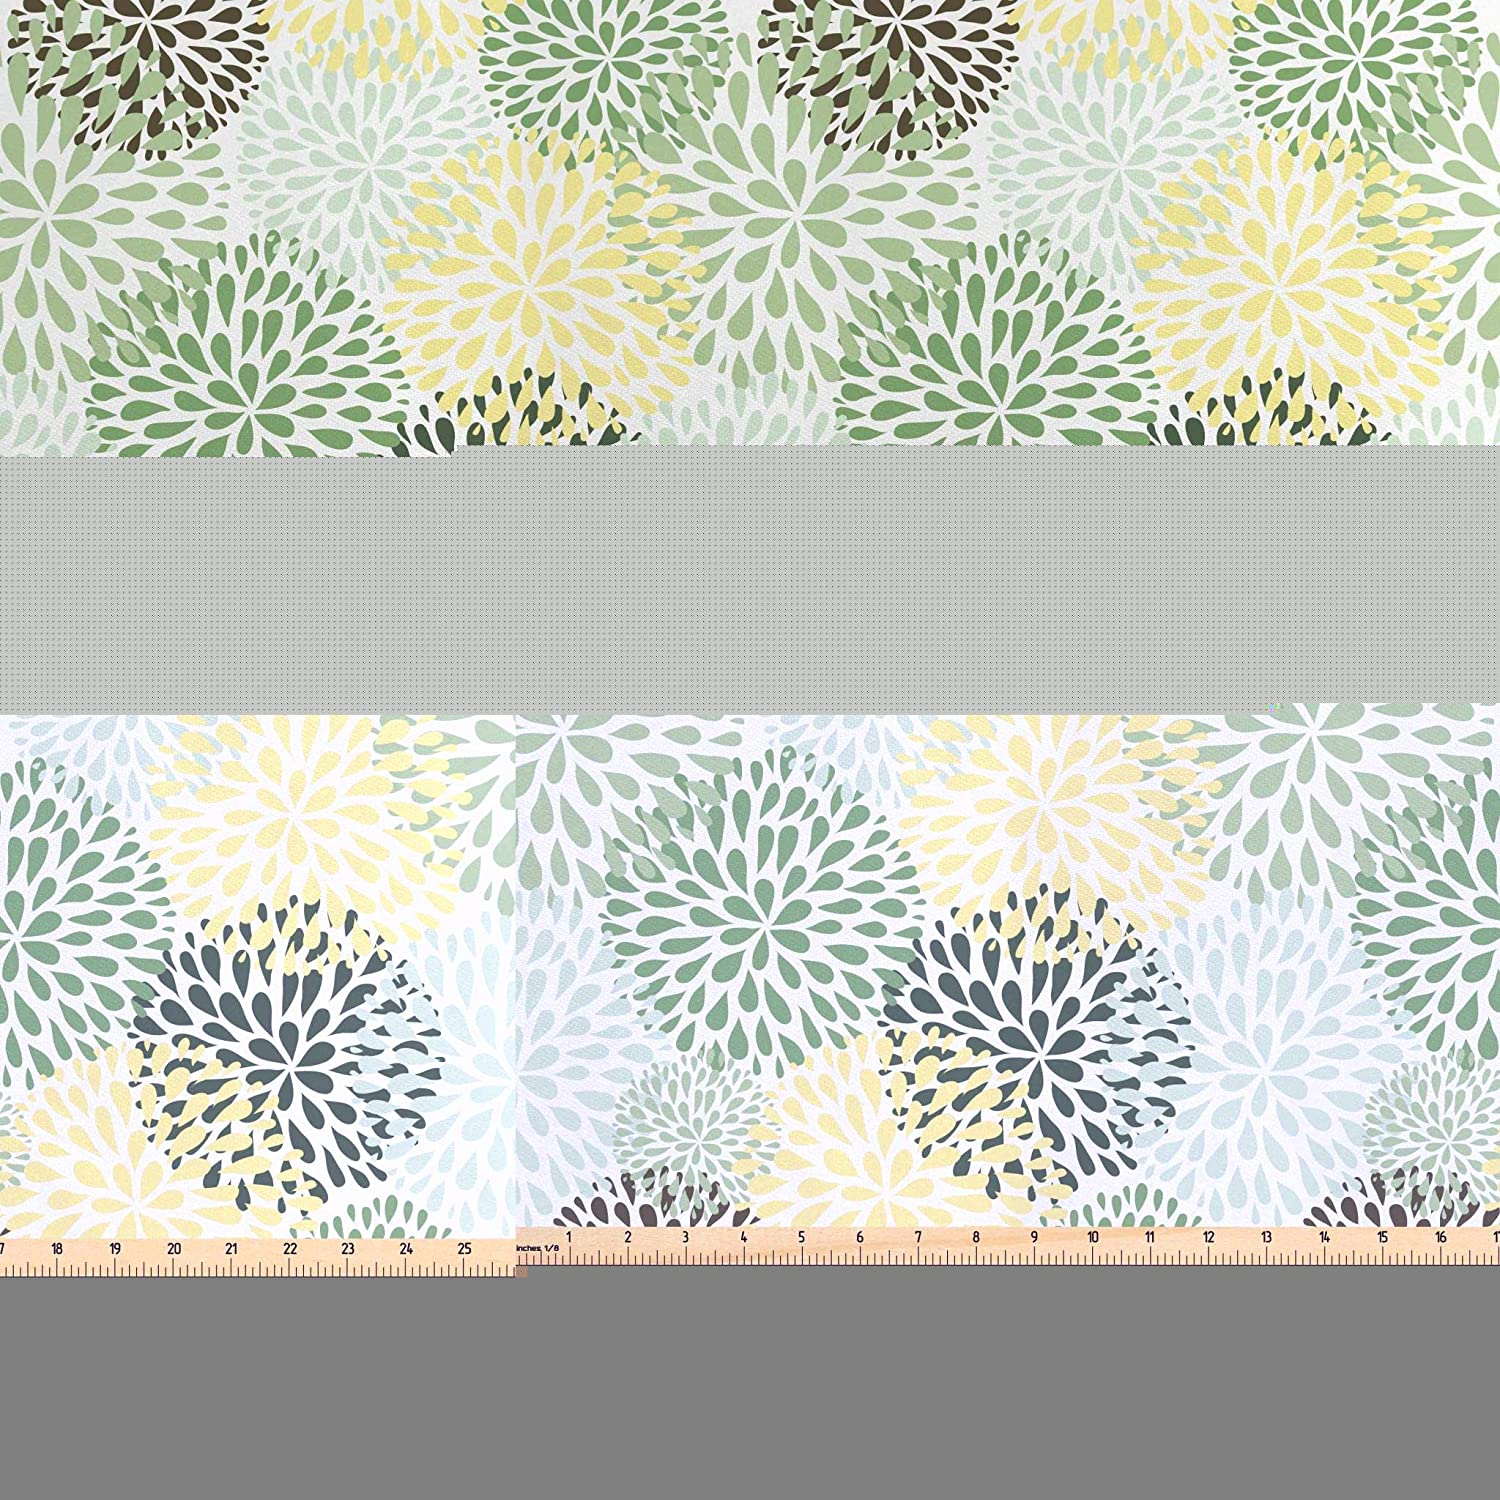 Lunarable Floral Fabric by The Yard, Modern Floral Ornate Petals Flourish Traditional Springtime Garden Leaves, Decorative Satin Fabric for Home Textiles and Crafts, 1 Yard, Green Yellow Brown